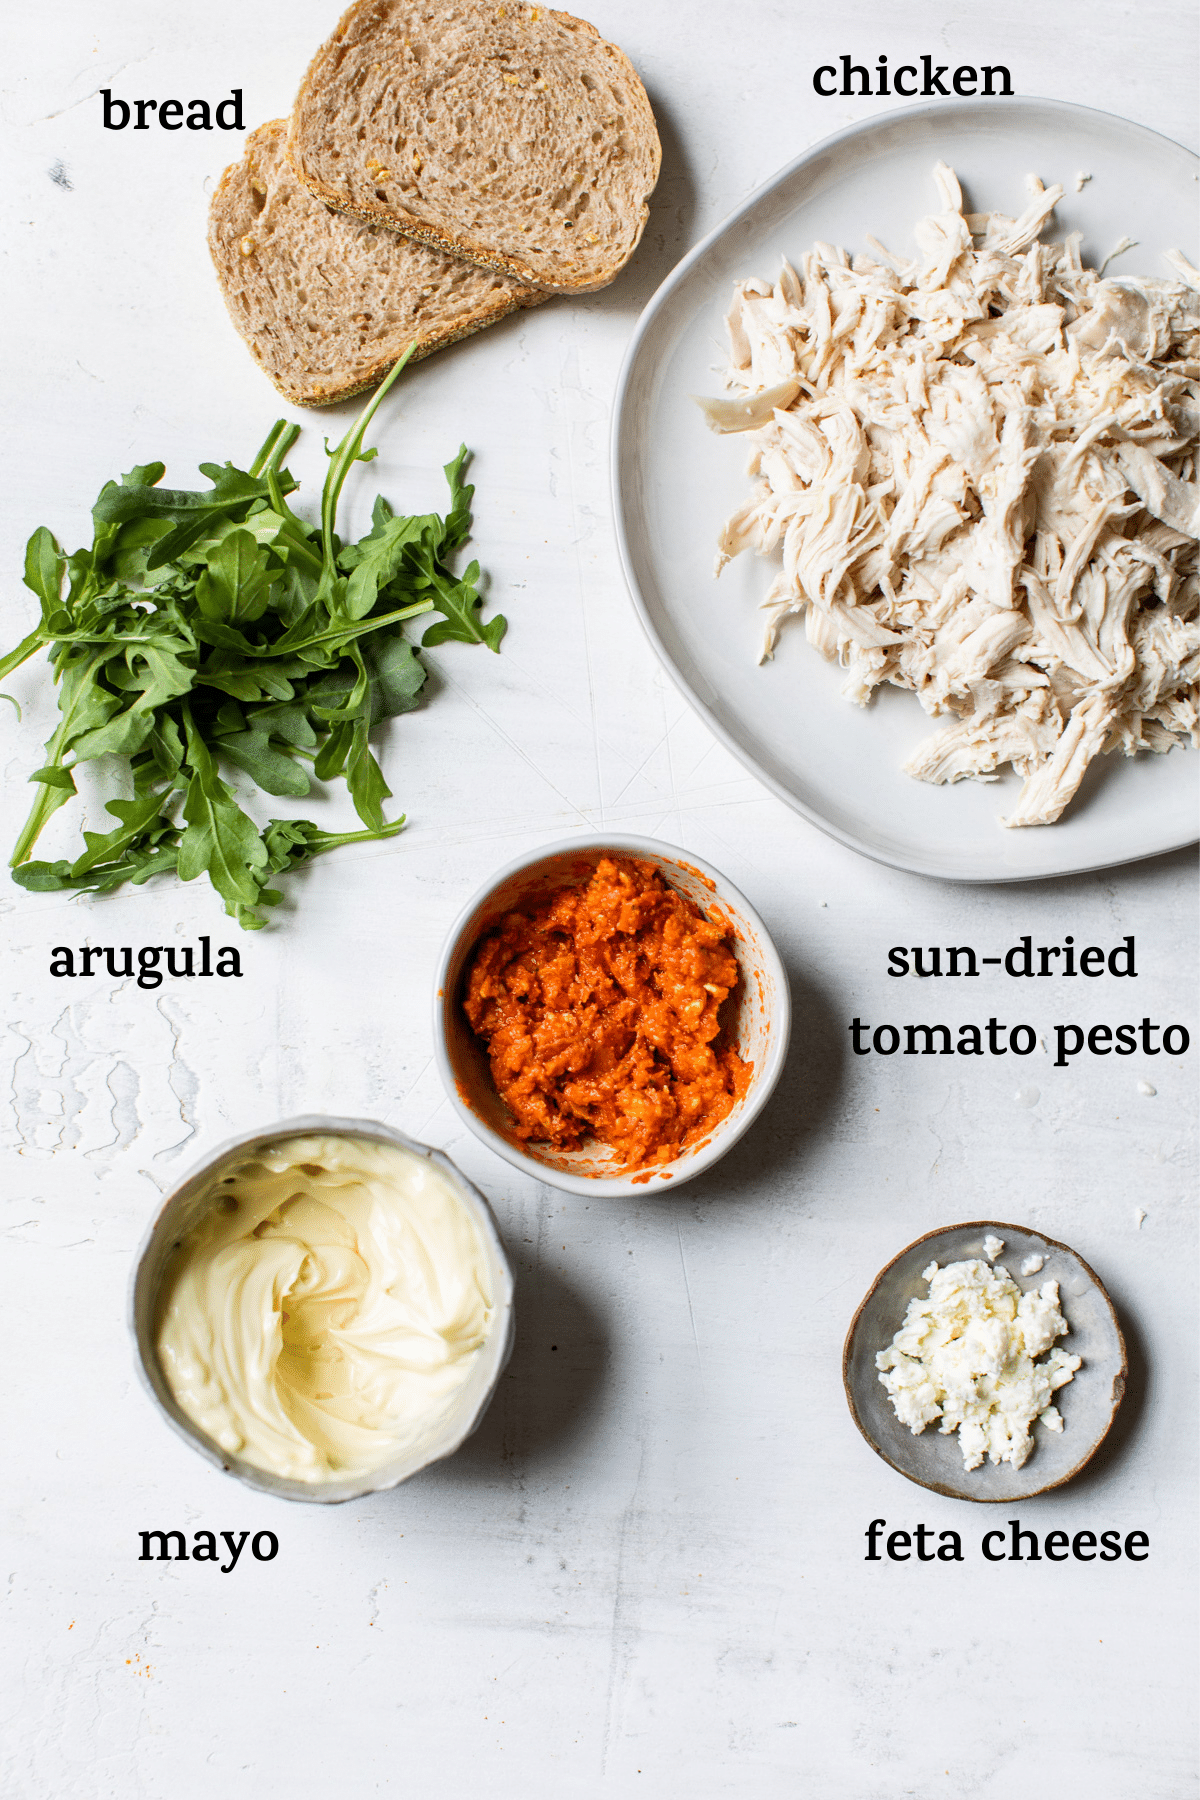 chicken salad ingredients with text overlay